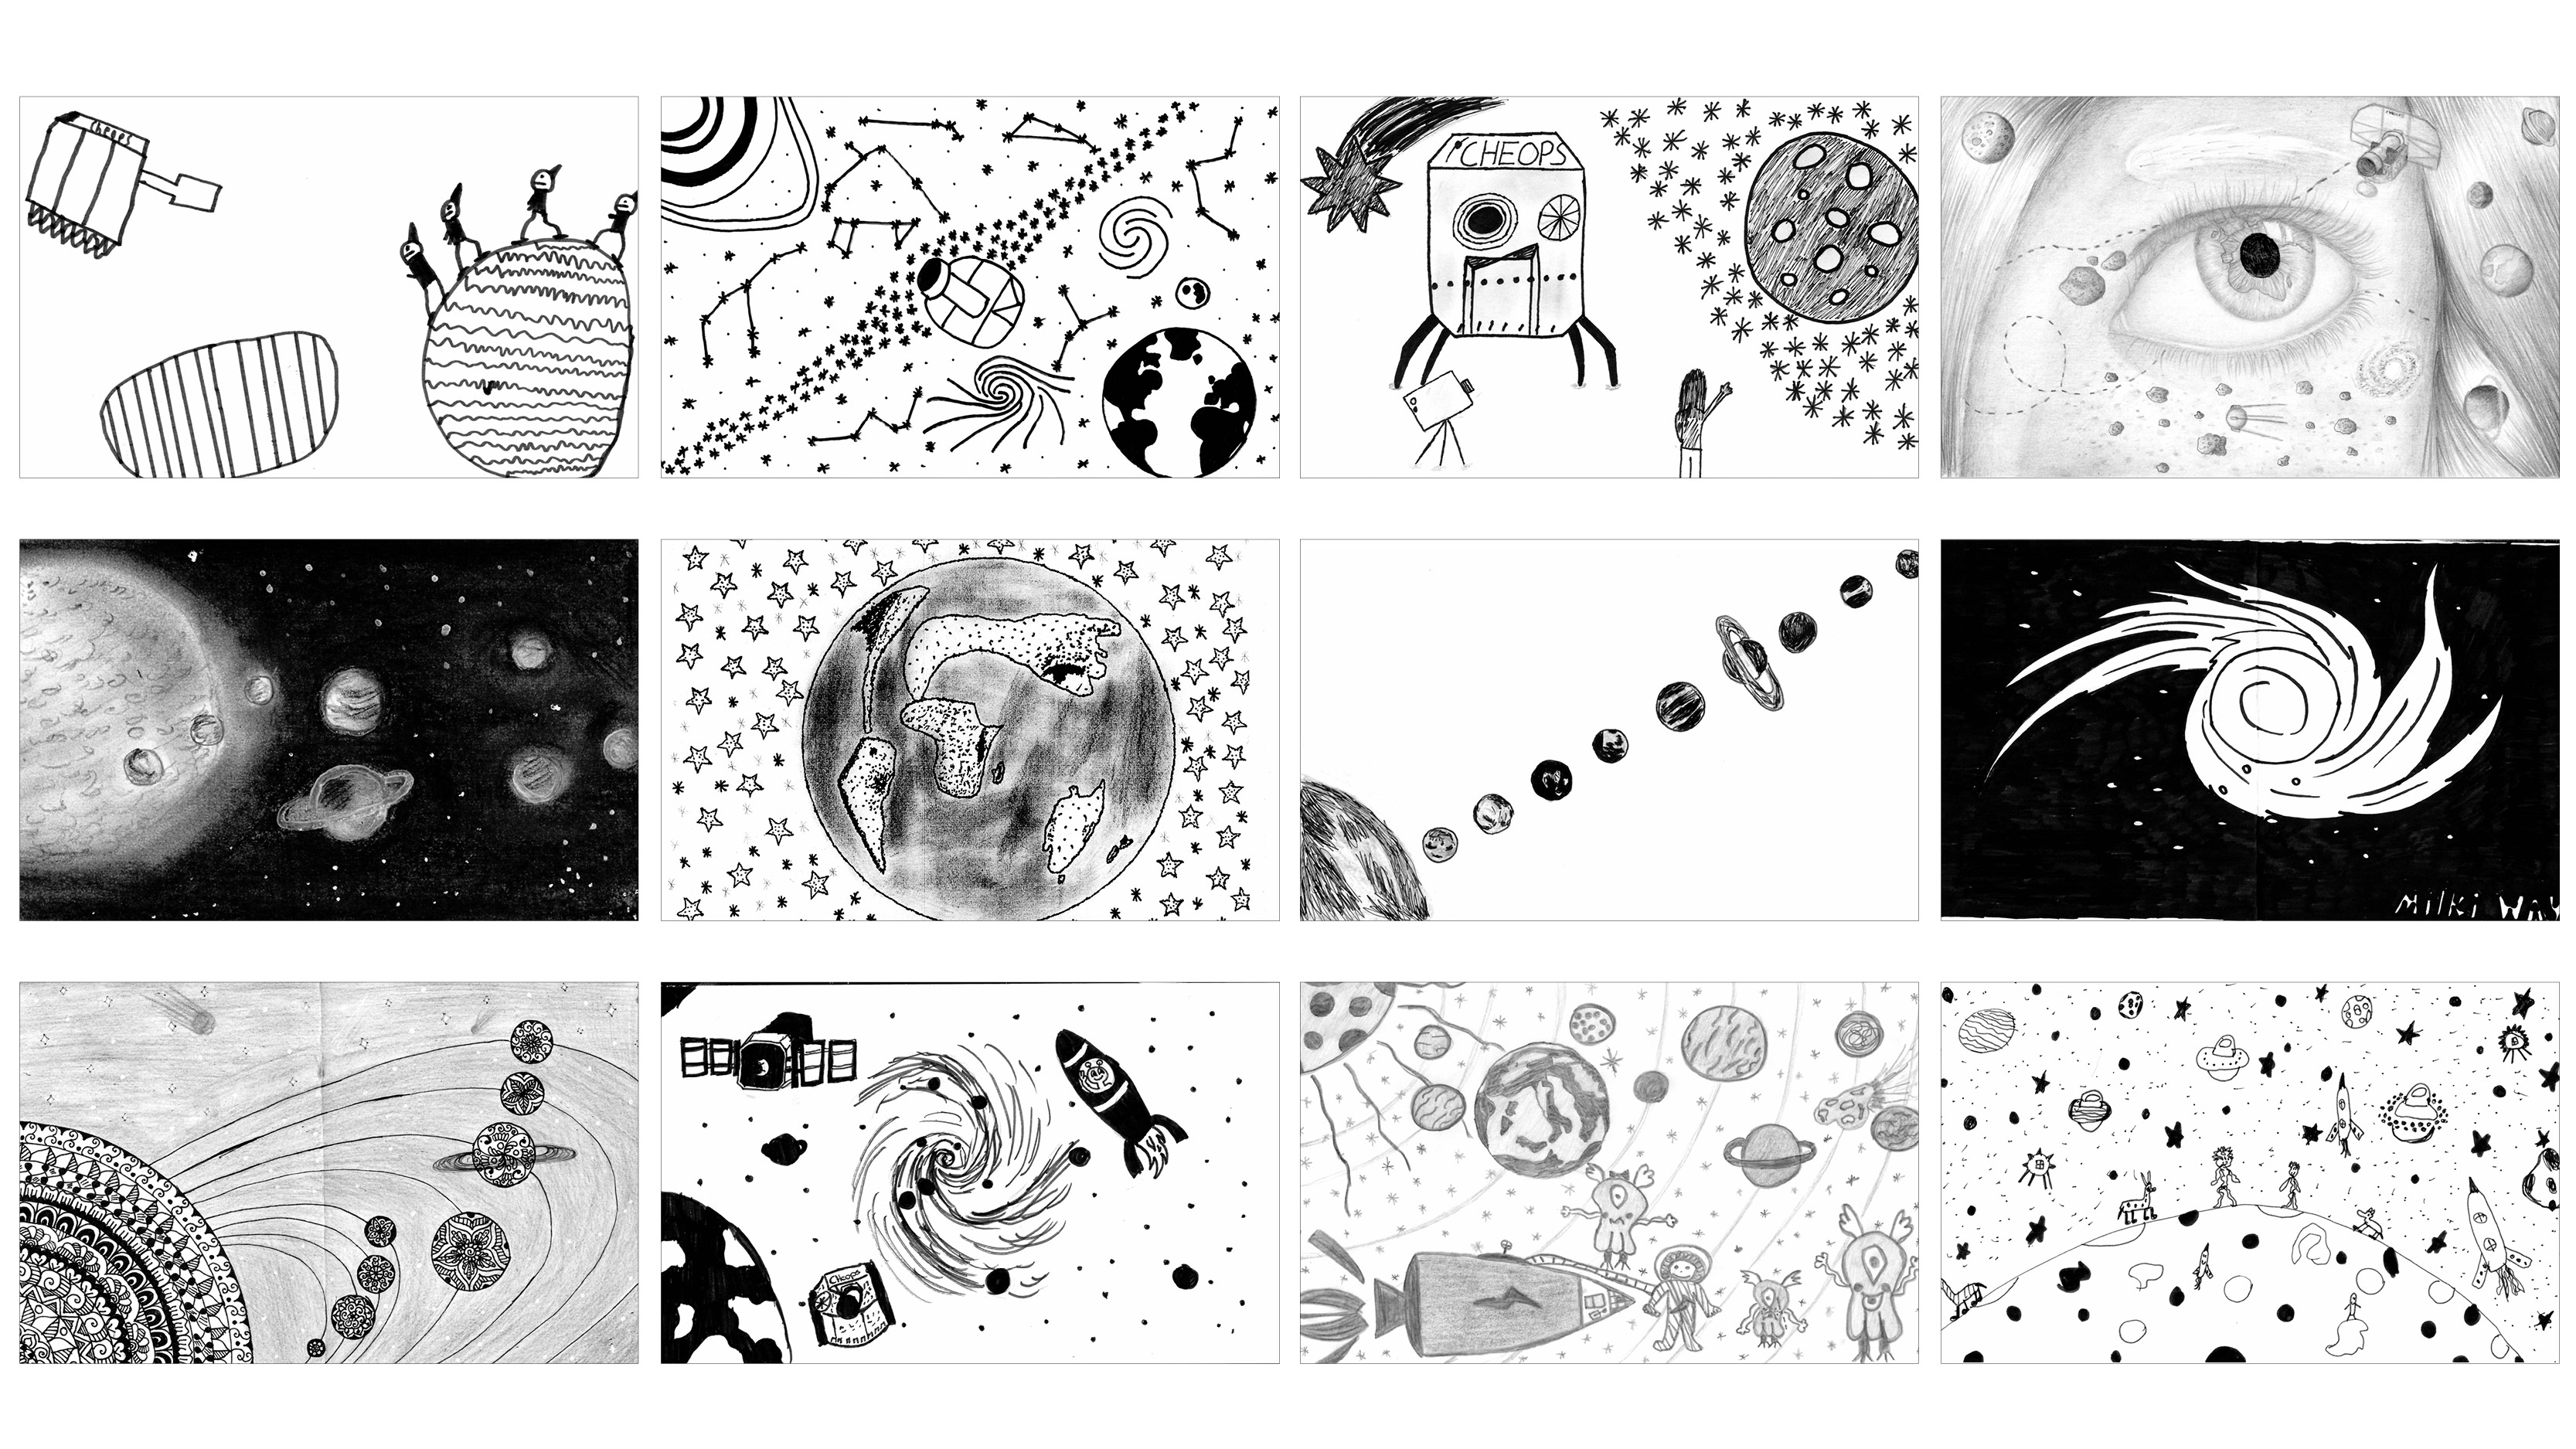 1567215438852-CHEOPS_drawing_competition_entries.jpg